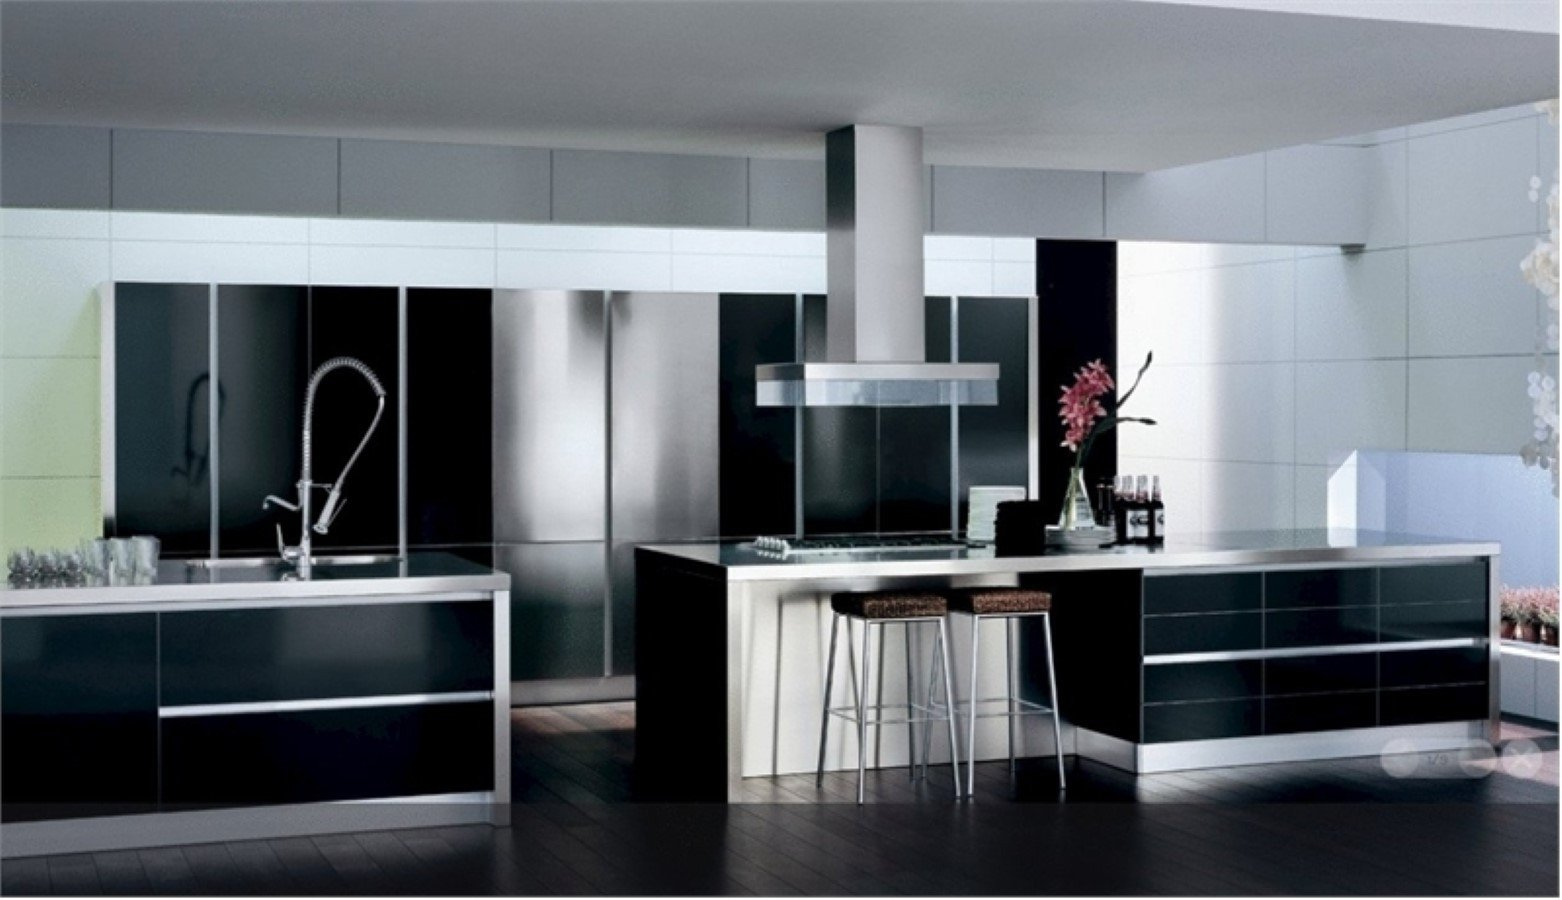 Black and White Kitchen Decor Inspirational Black and White Kitchen Decor to Feed Exclusive and Modern Passion